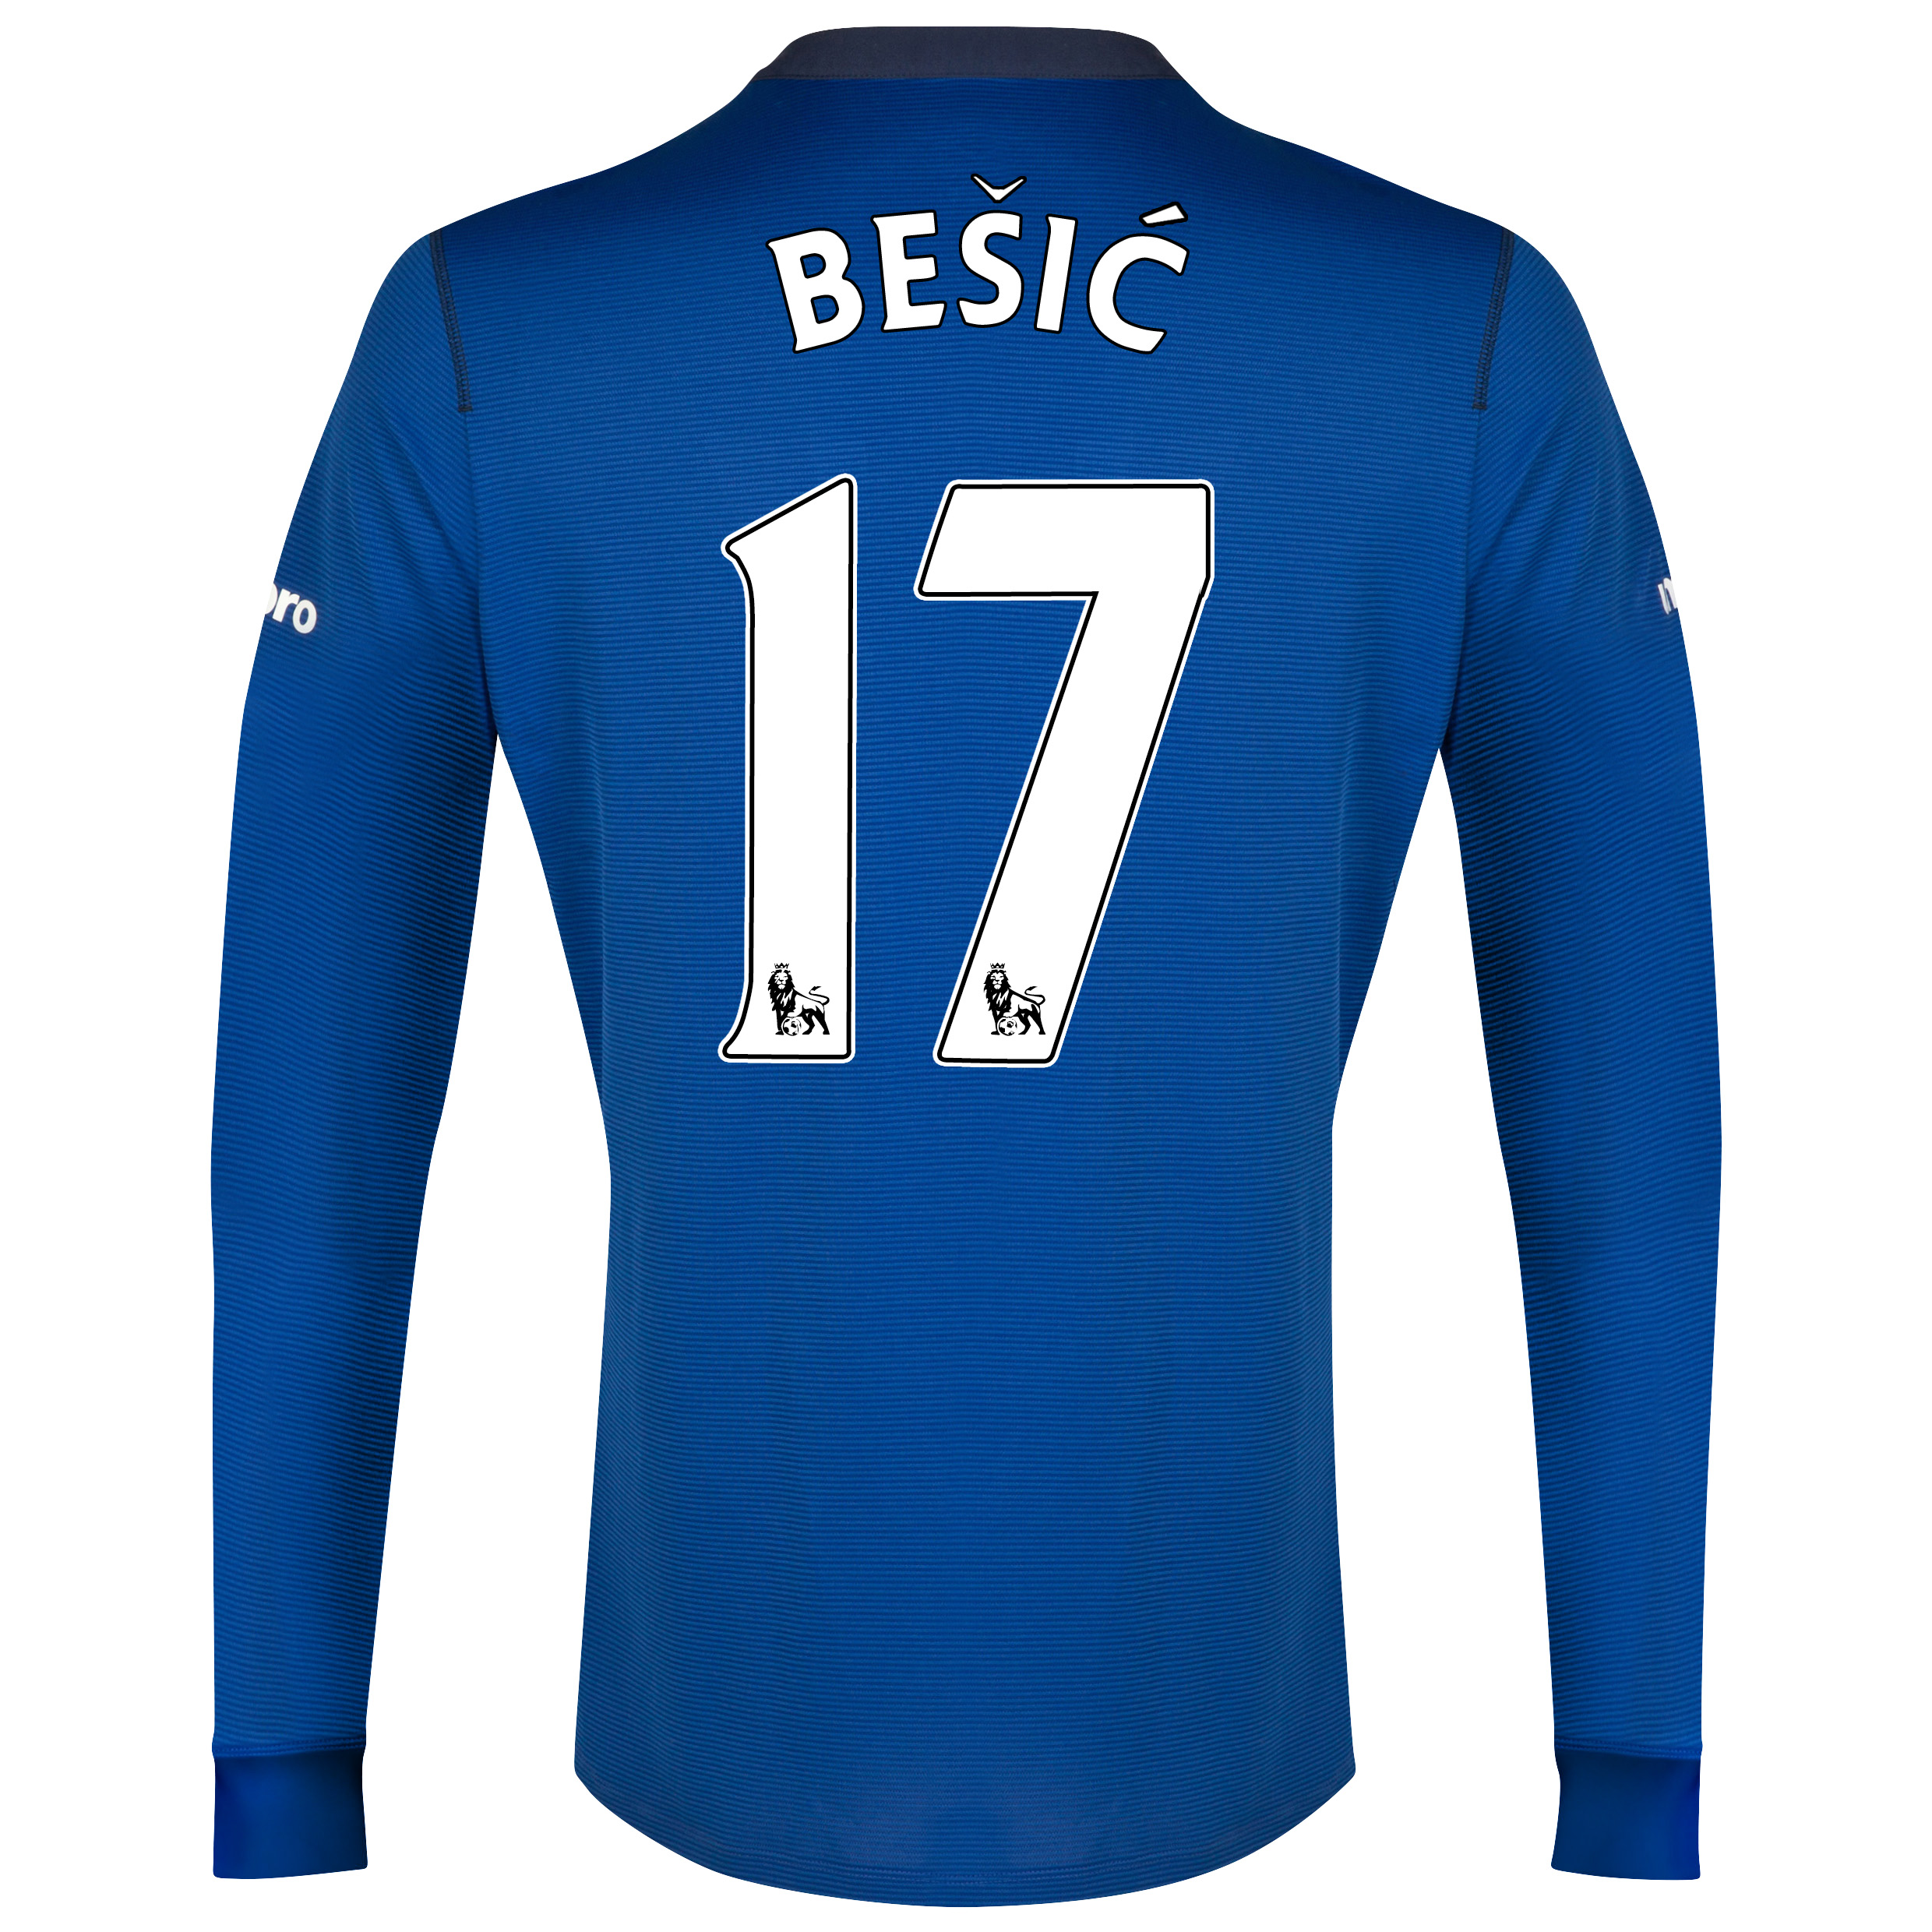 Everton LS Home Shirt 2014/15 with Besic 17 printing